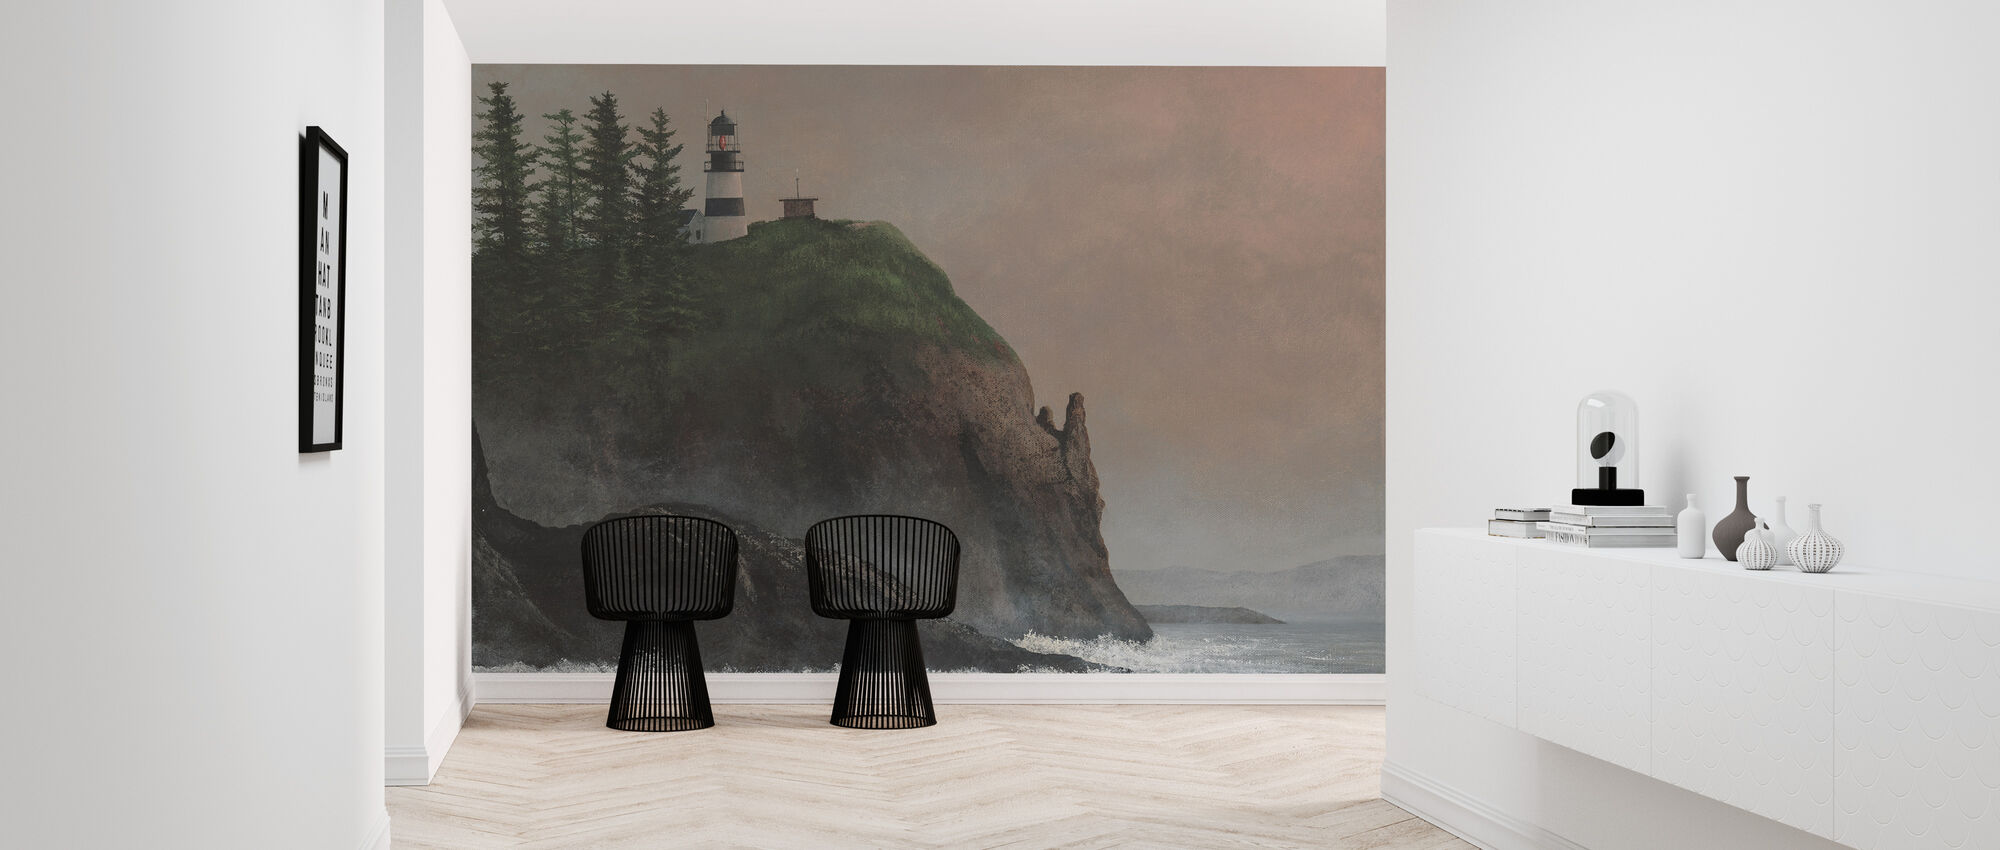 Cape Disappointment Light - Wallpaper - Hallway